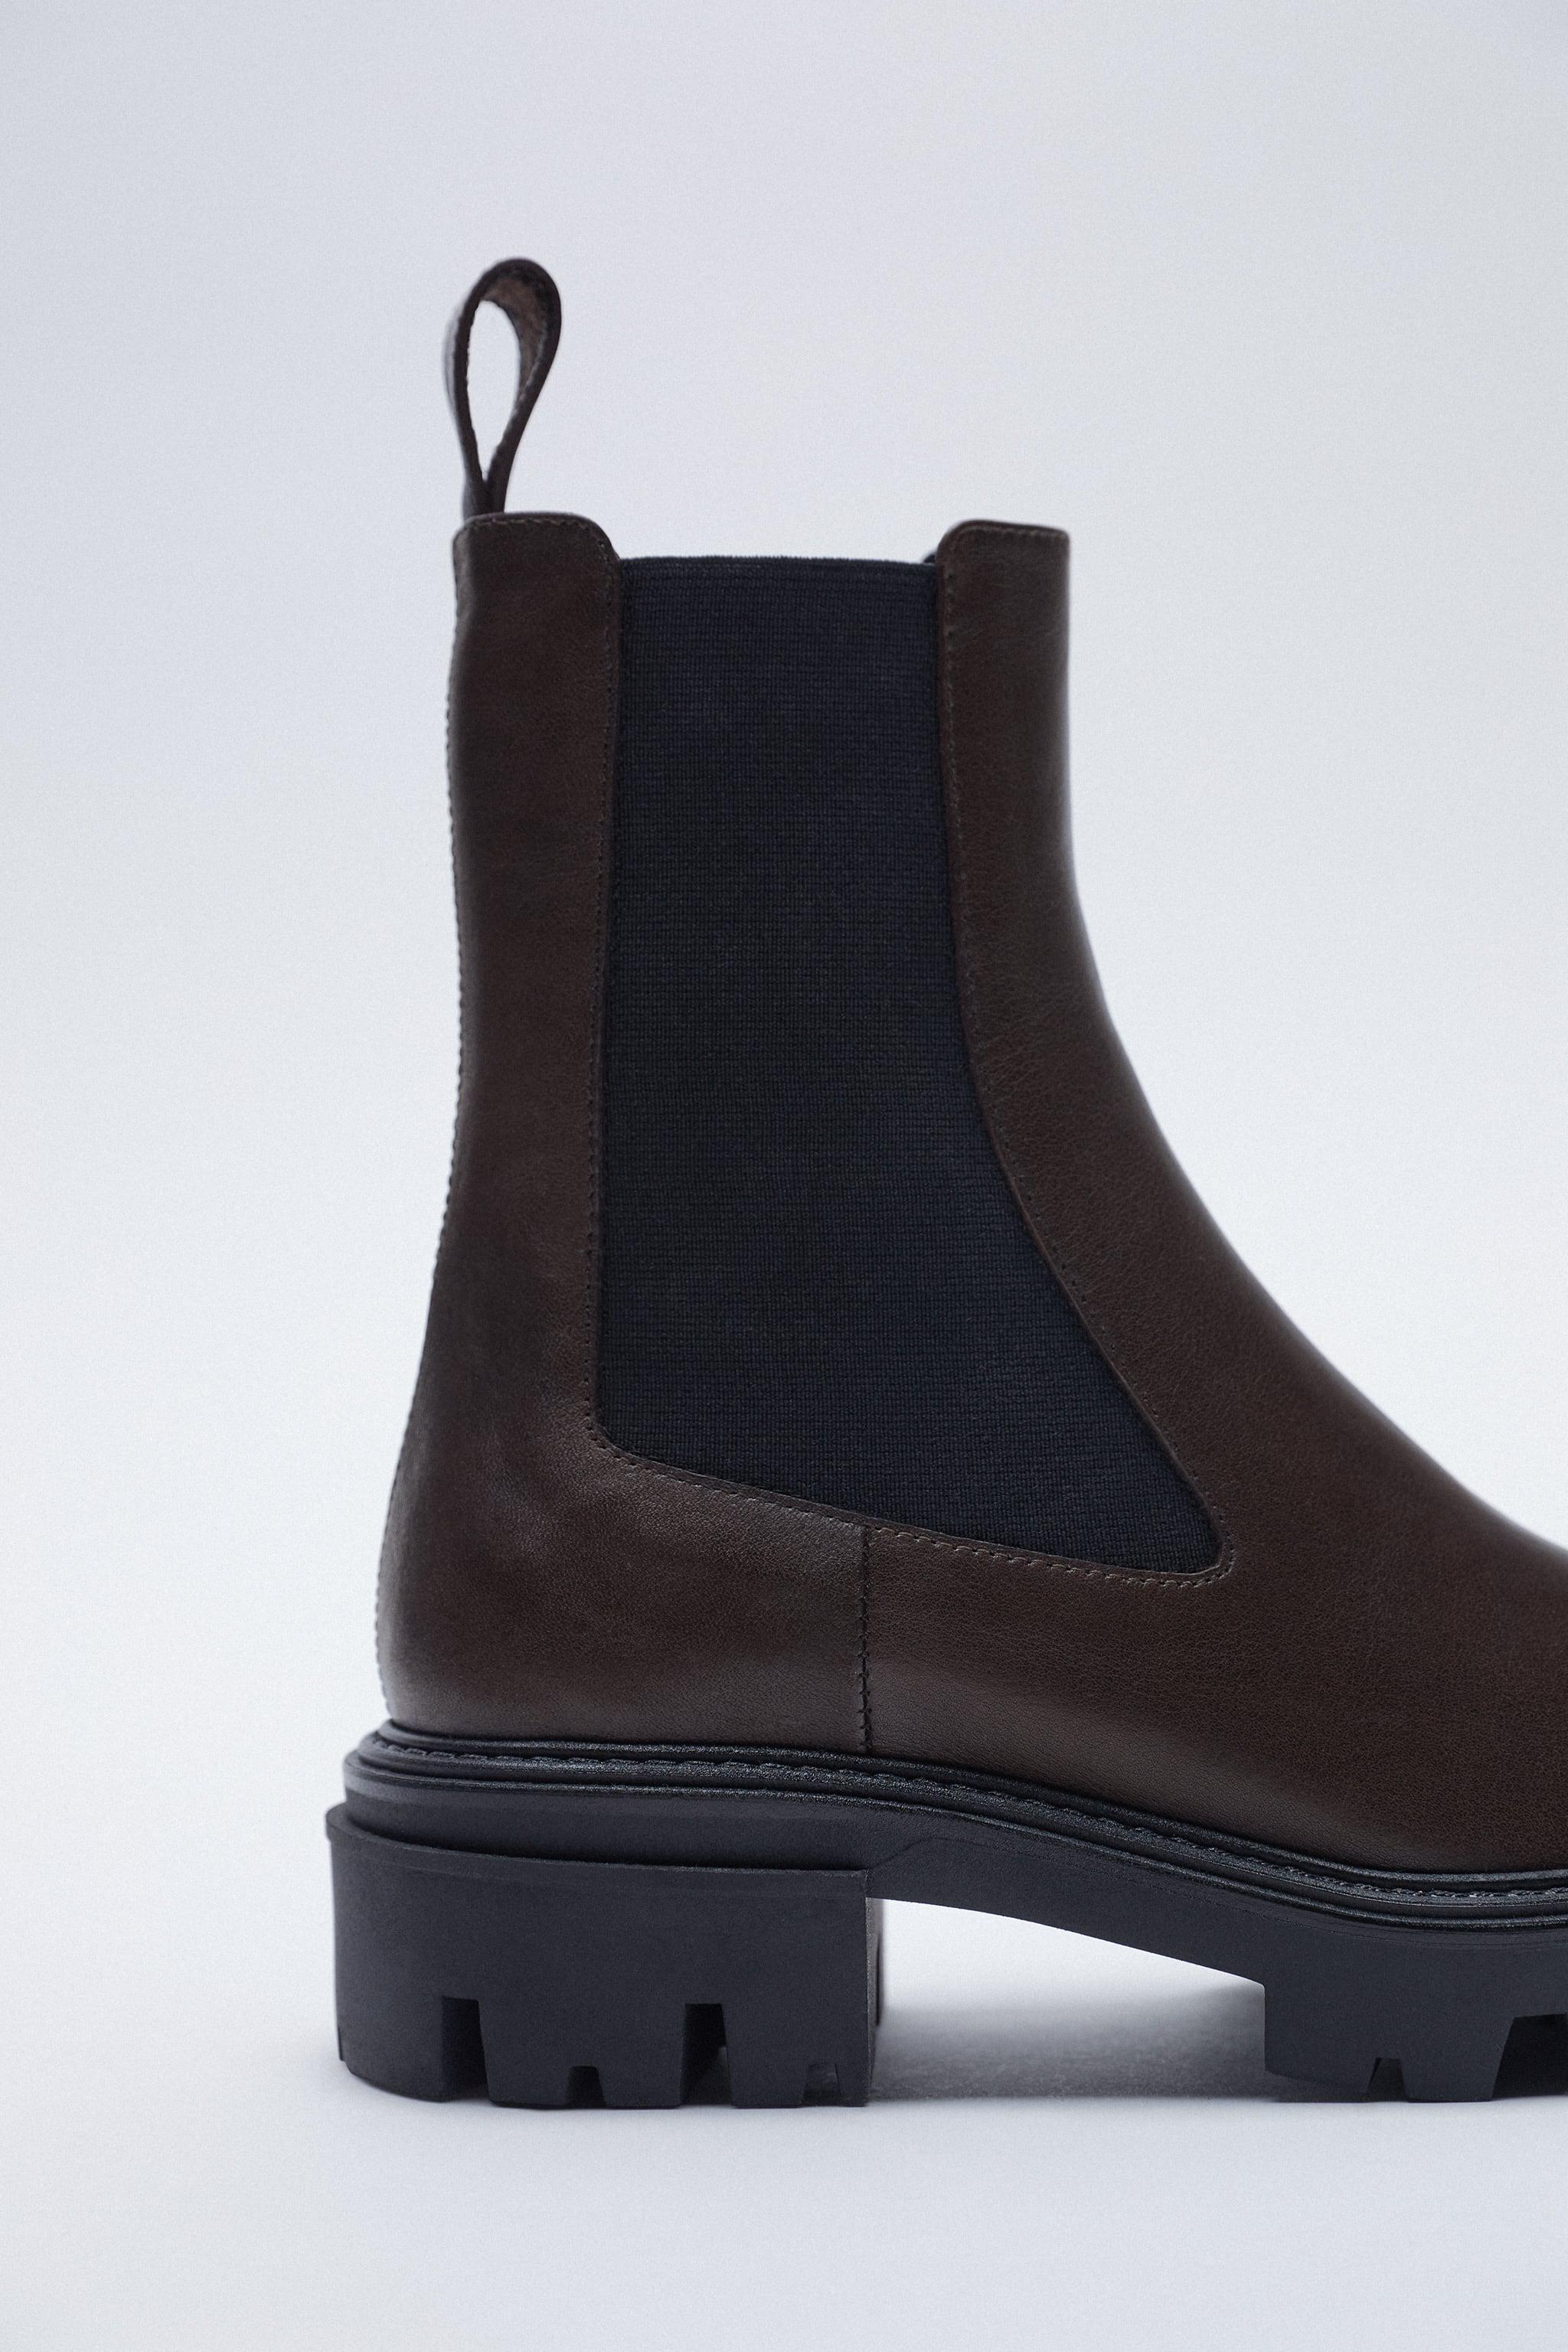 LOW HEEL LEATHER ANKLE BOOTS WITH ELASTIC GORING 4